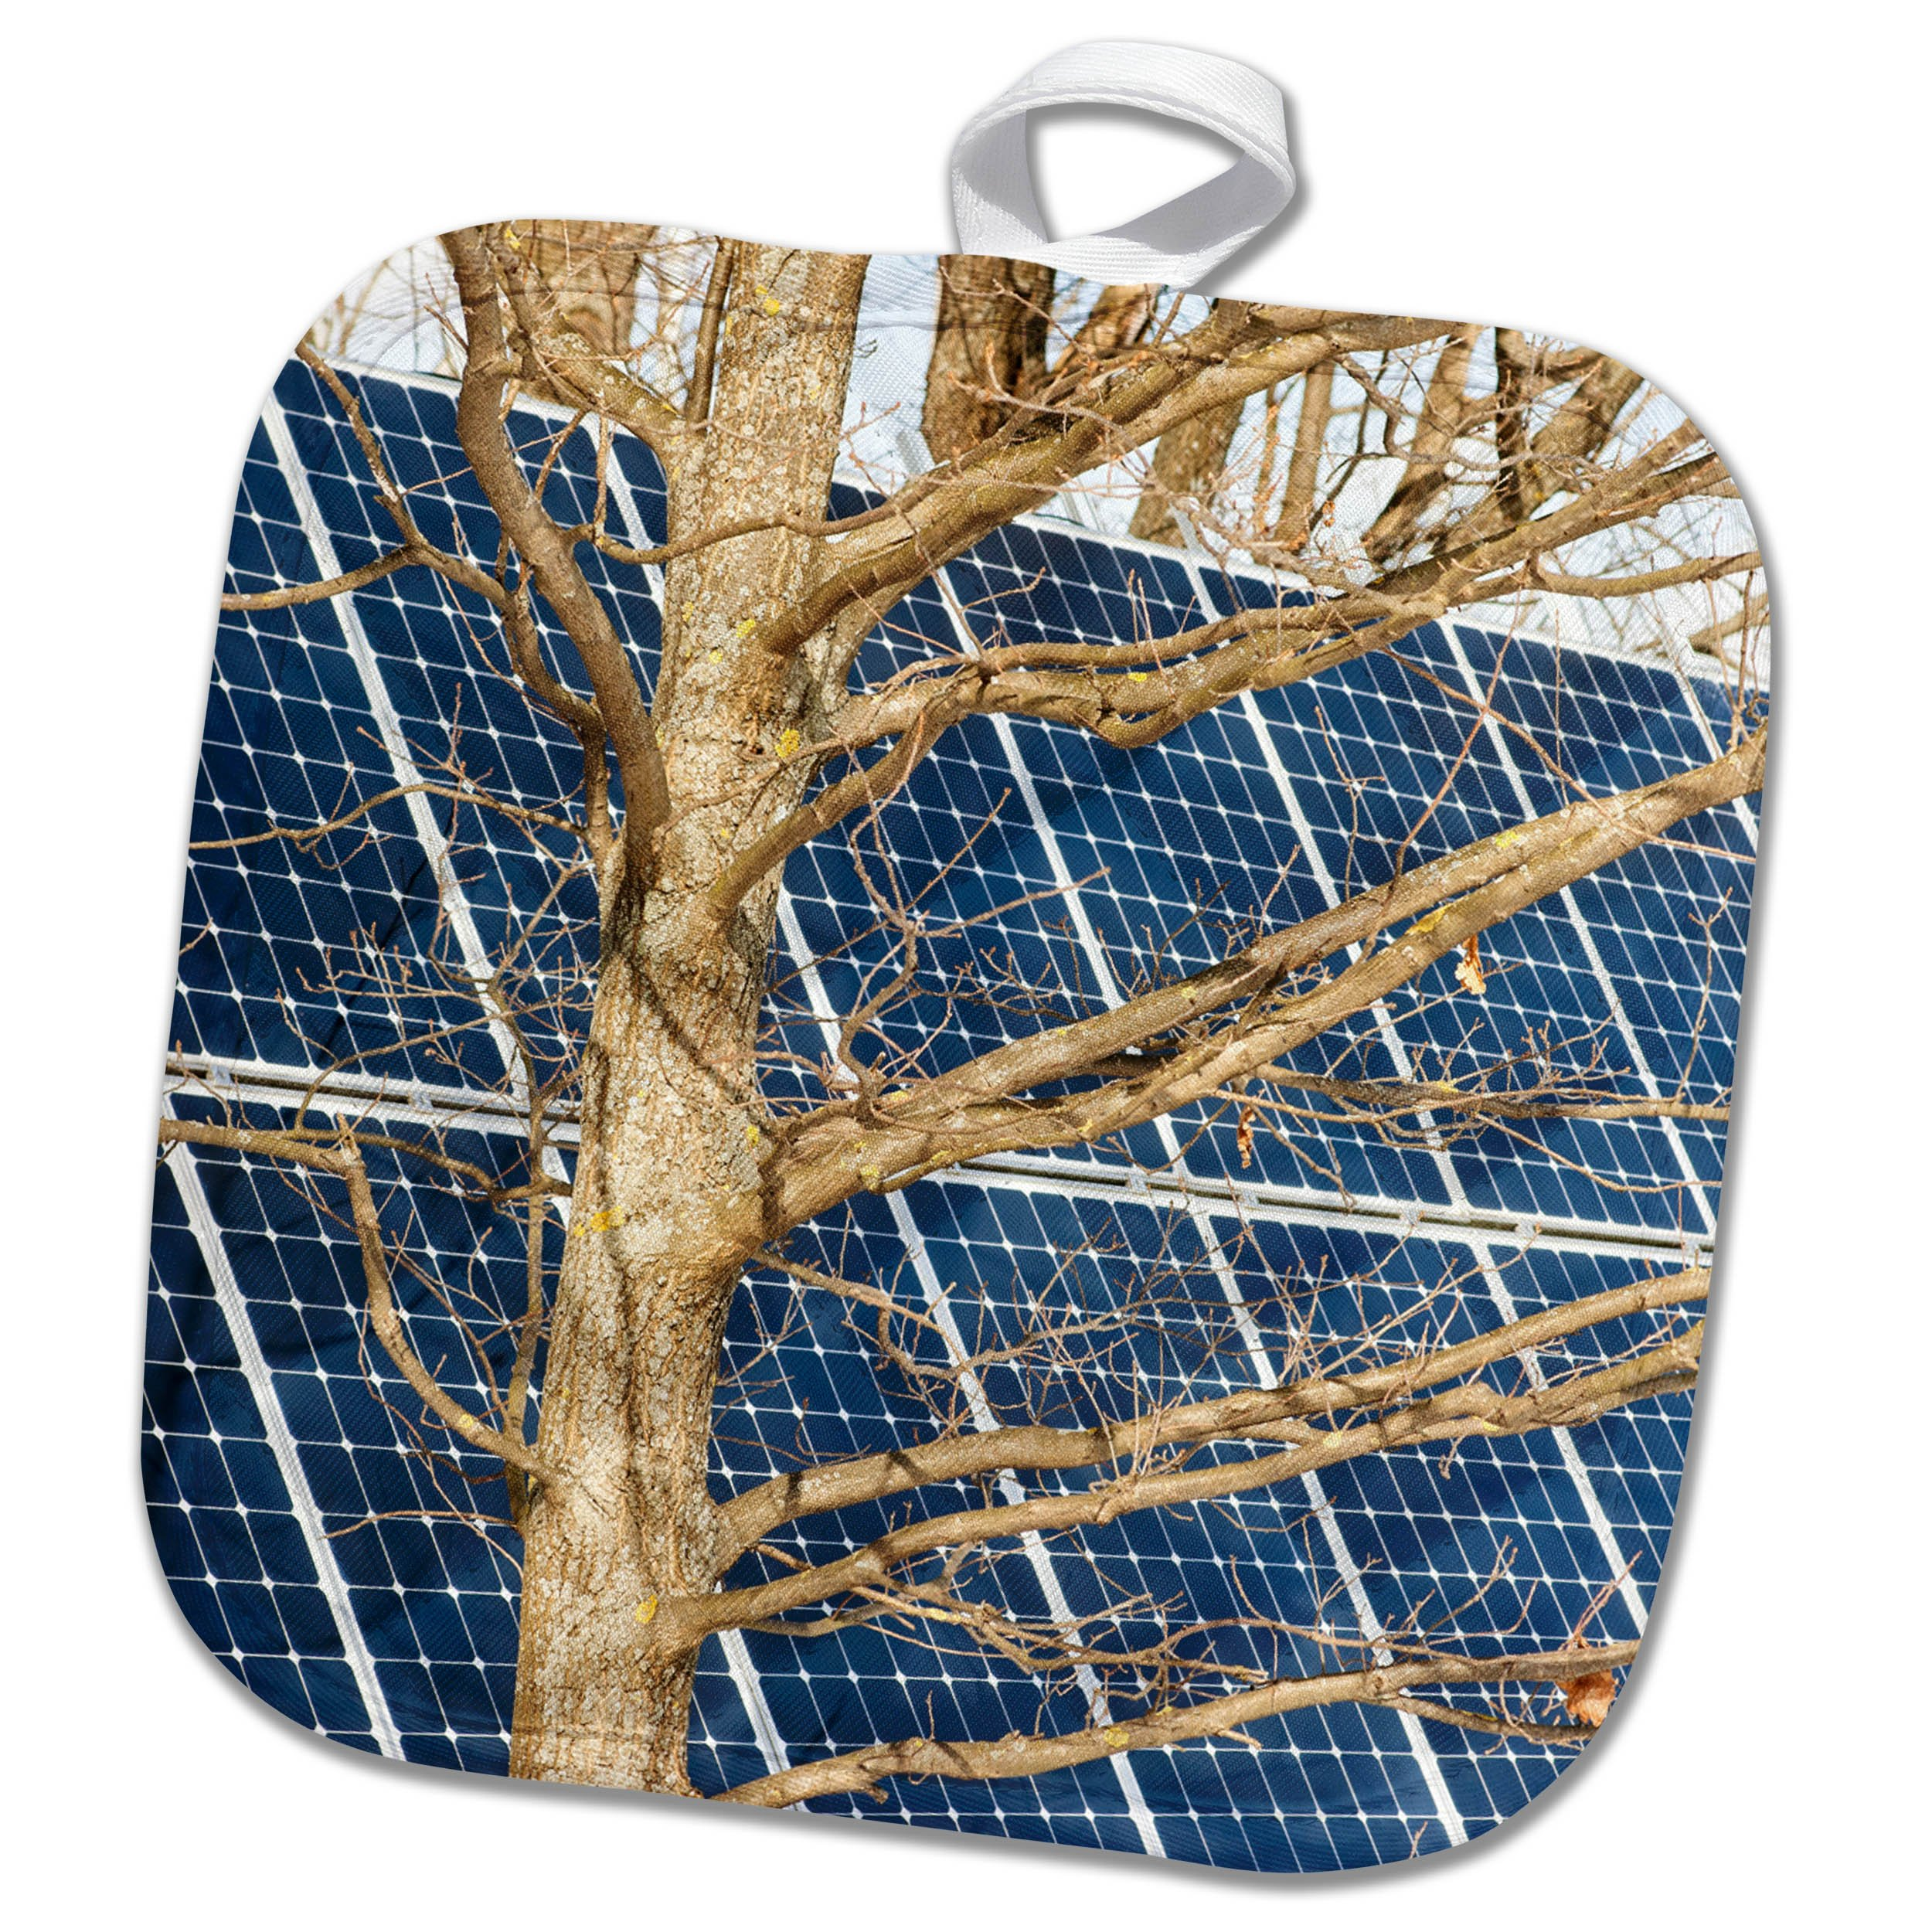 3dRose Alexis Photography - Objects - Young leafless oak tree and a solar power panel. Both turned sunward - 8x8 Potholder (phl_283847_1)